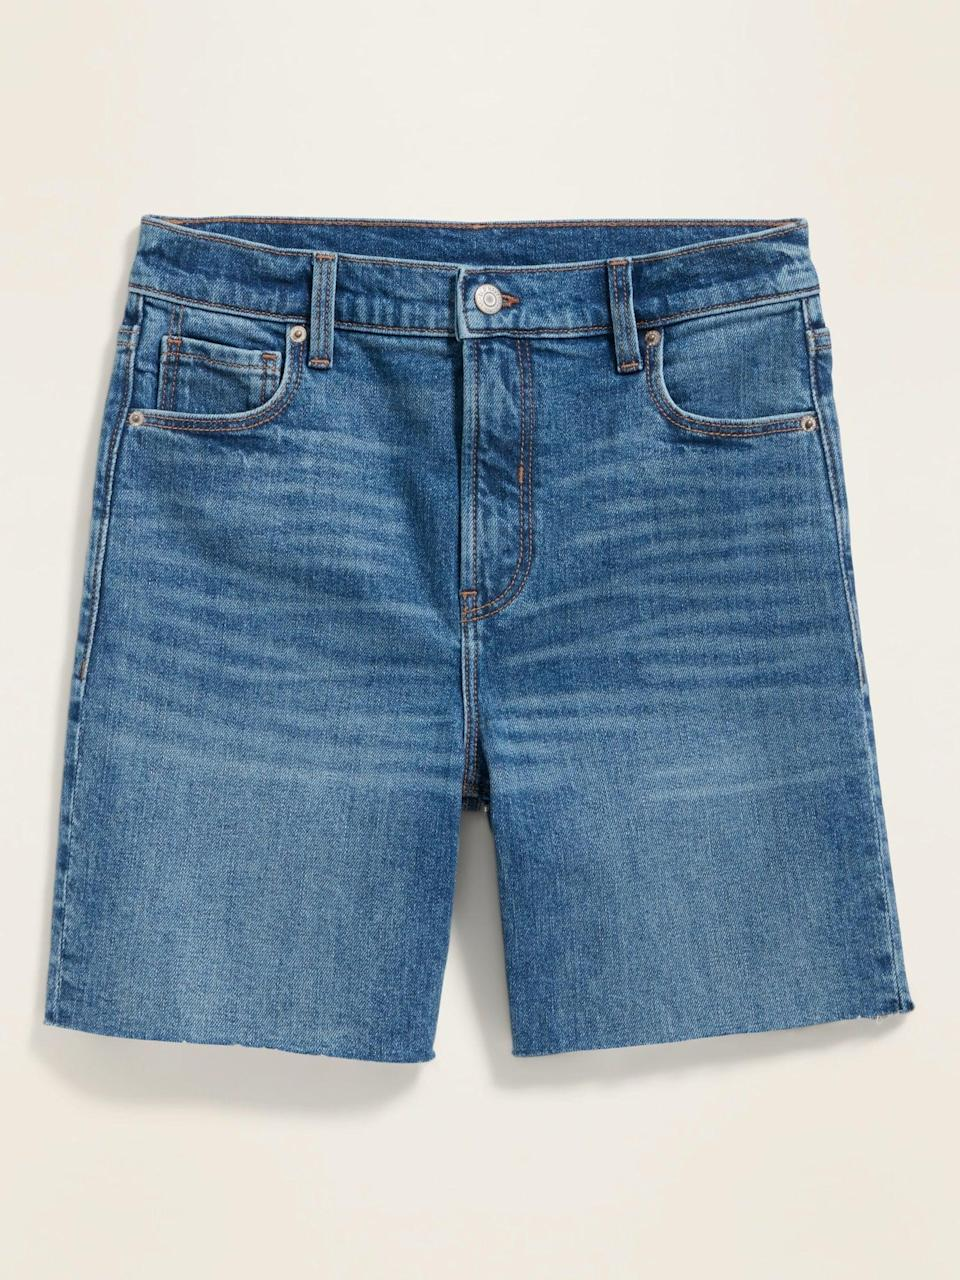 "<p>These <a href=""https://www.popsugar.com/buy/Old-Navy-High-Waisted-Relaxed-Cut-Off-Jean-Shorts-587731?p_name=Old%20Navy%20High-Waisted%20Relaxed%20Cut-Off%20Jean%20Shorts&retailer=oldnavy.gap.com&pid=587731&price=20&evar1=fab%3Aus&evar9=45988379&evar98=https%3A%2F%2Fwww.popsugar.com%2Ffashion%2Fphoto-gallery%2F45988379%2Fimage%2F47603867%2FOld-Navy-High-Waisted-Relaxed-Cut-Off-Jean-Shorts&list1=shopping%2Cdenim%2Cshorts%2Csummer%2Cdenim%20shorts%2Csummer%20fashion&prop13=mobile&pdata=1"" class=""link rapid-noclick-resp"" rel=""nofollow noopener"" target=""_blank"" data-ylk=""slk:Old Navy High-Waisted Relaxed Cut-Off Jean Shorts"">Old Navy High-Waisted Relaxed Cut-Off Jean Shorts</a> ($20, originally $30) are super comfortable.</p>"